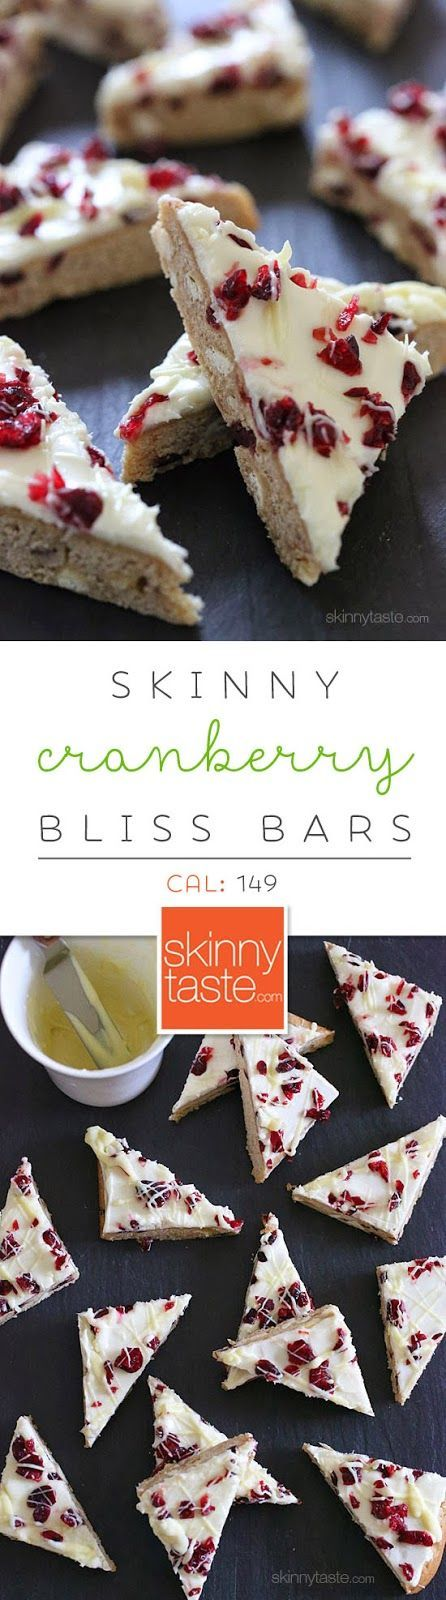 Skinny Cranberry Bliss Bars